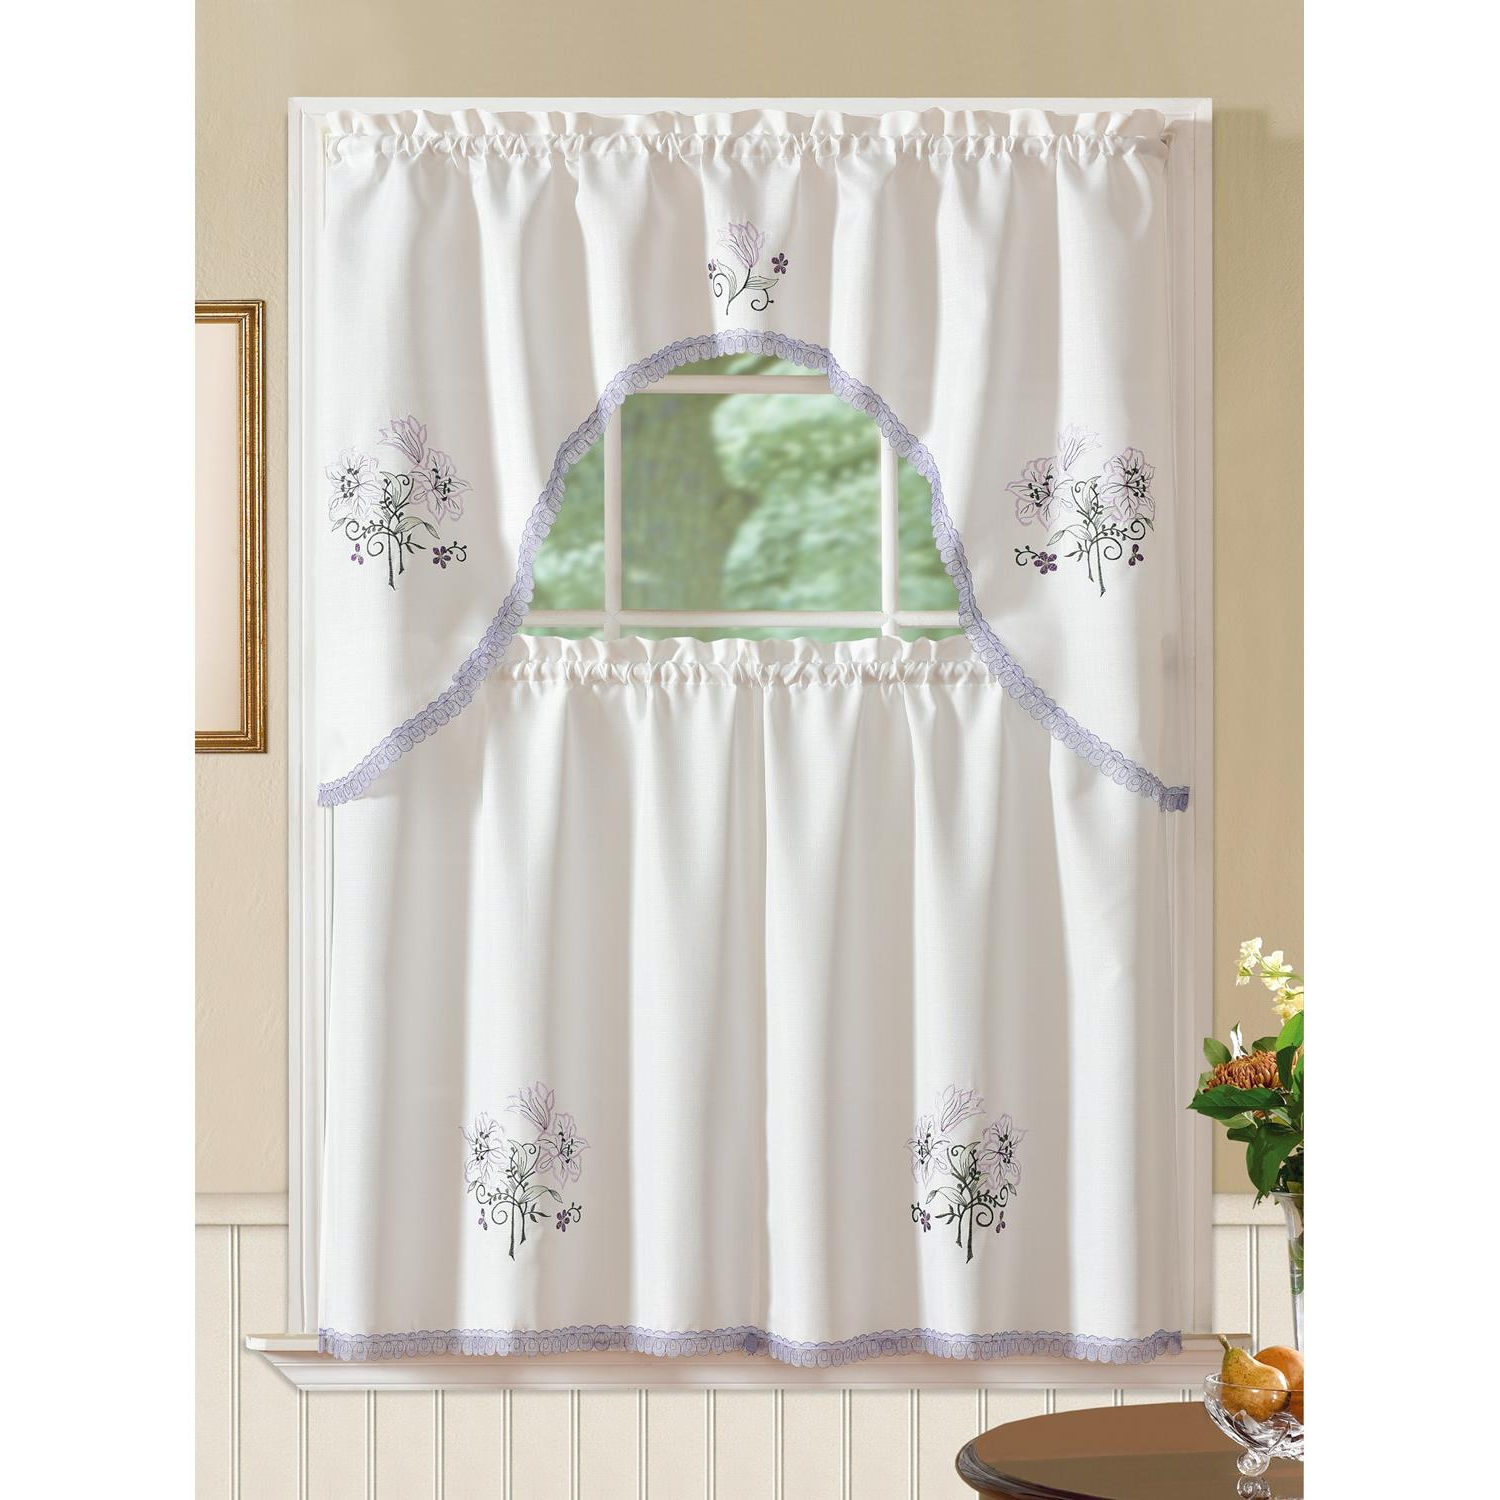 Popular Embroidered Floral 5 Piece Kitchen Curtain Sets Pertaining To Details About Regal Embroidered Lily Kitchen Curtain Set (View 12 of 20)